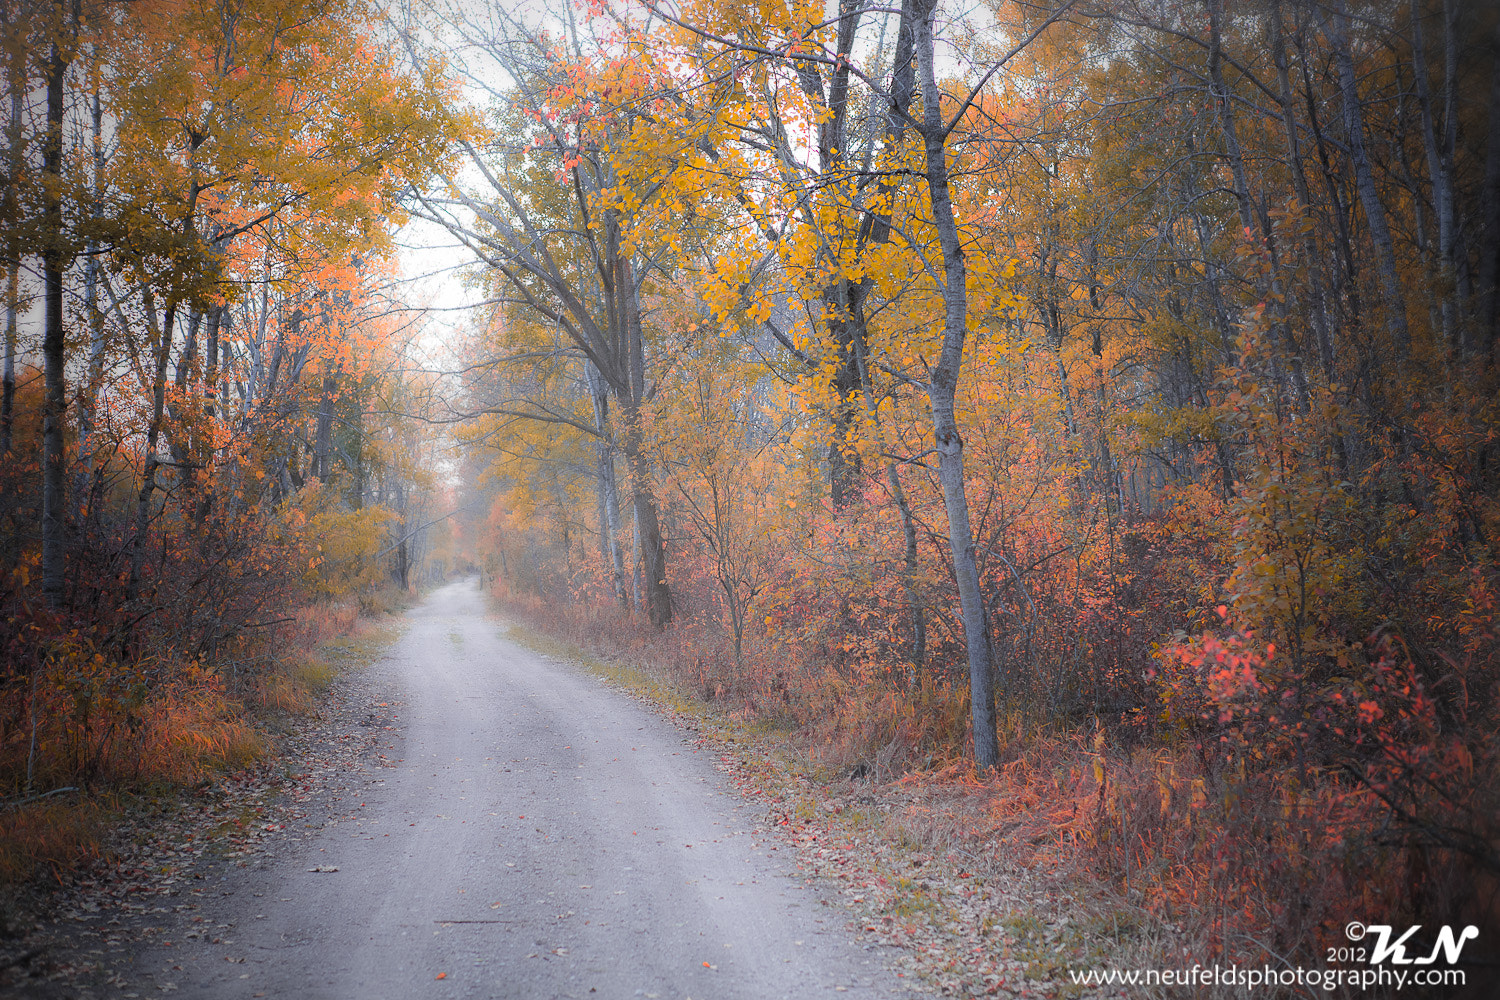 Photograph Fall in the country by Kelvin Neufeld on 500px